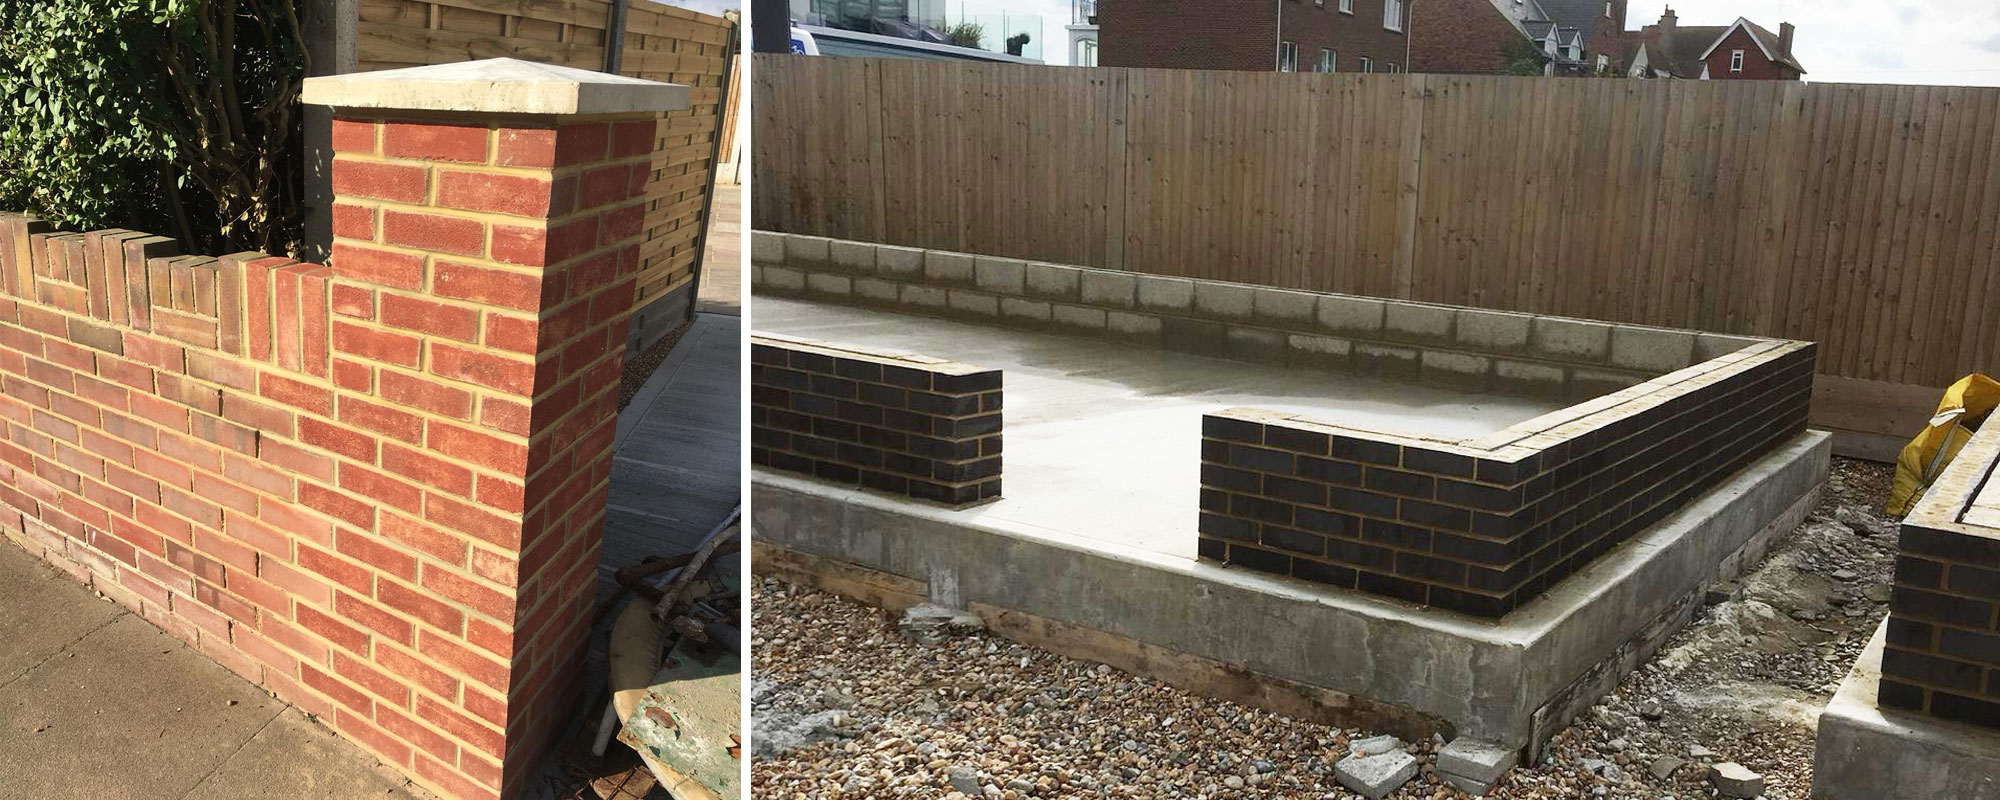 Brickwork Services - Our NVQ Qualified team are experts in laying brickwork installations